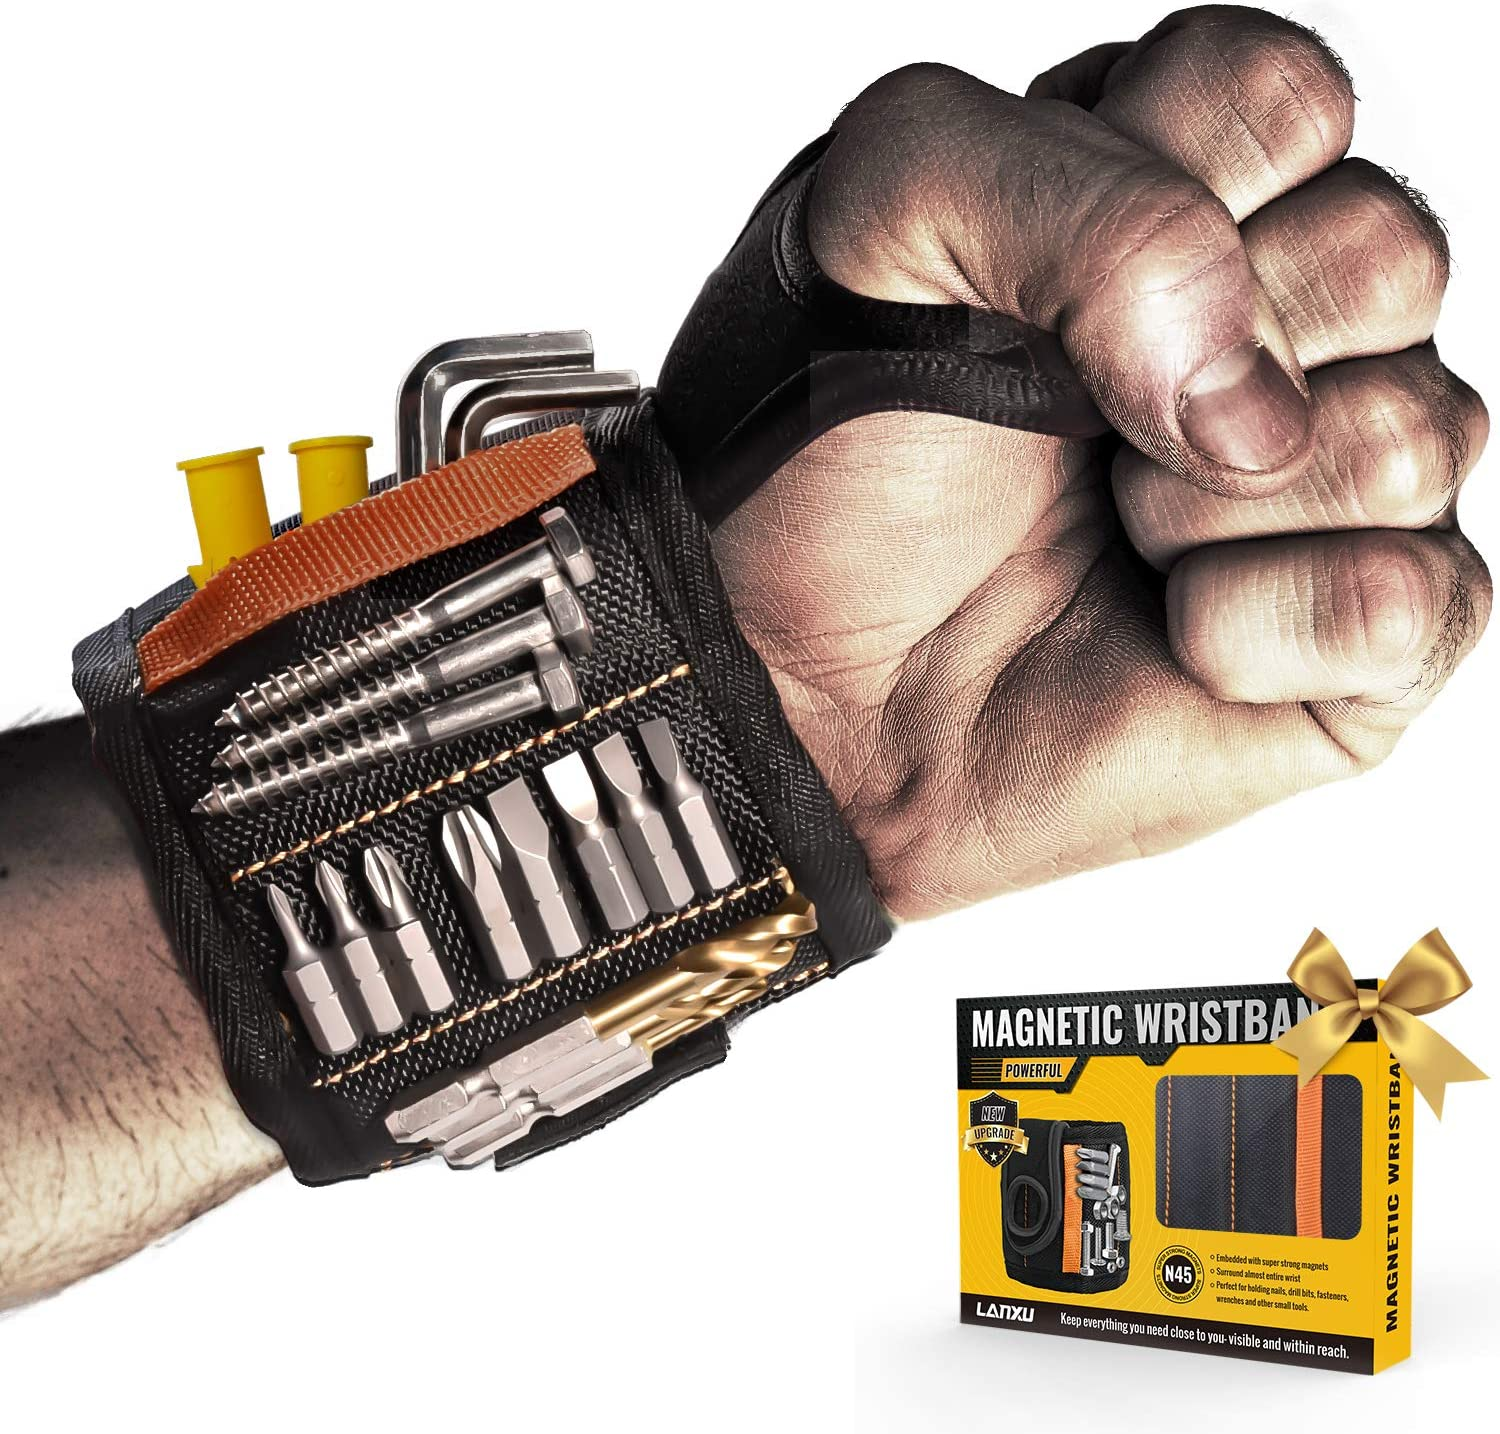 LANXU Magnetic Wristband Tool Belts with Albuquerque Mall 15 Strong Magnets Cheap super special price for